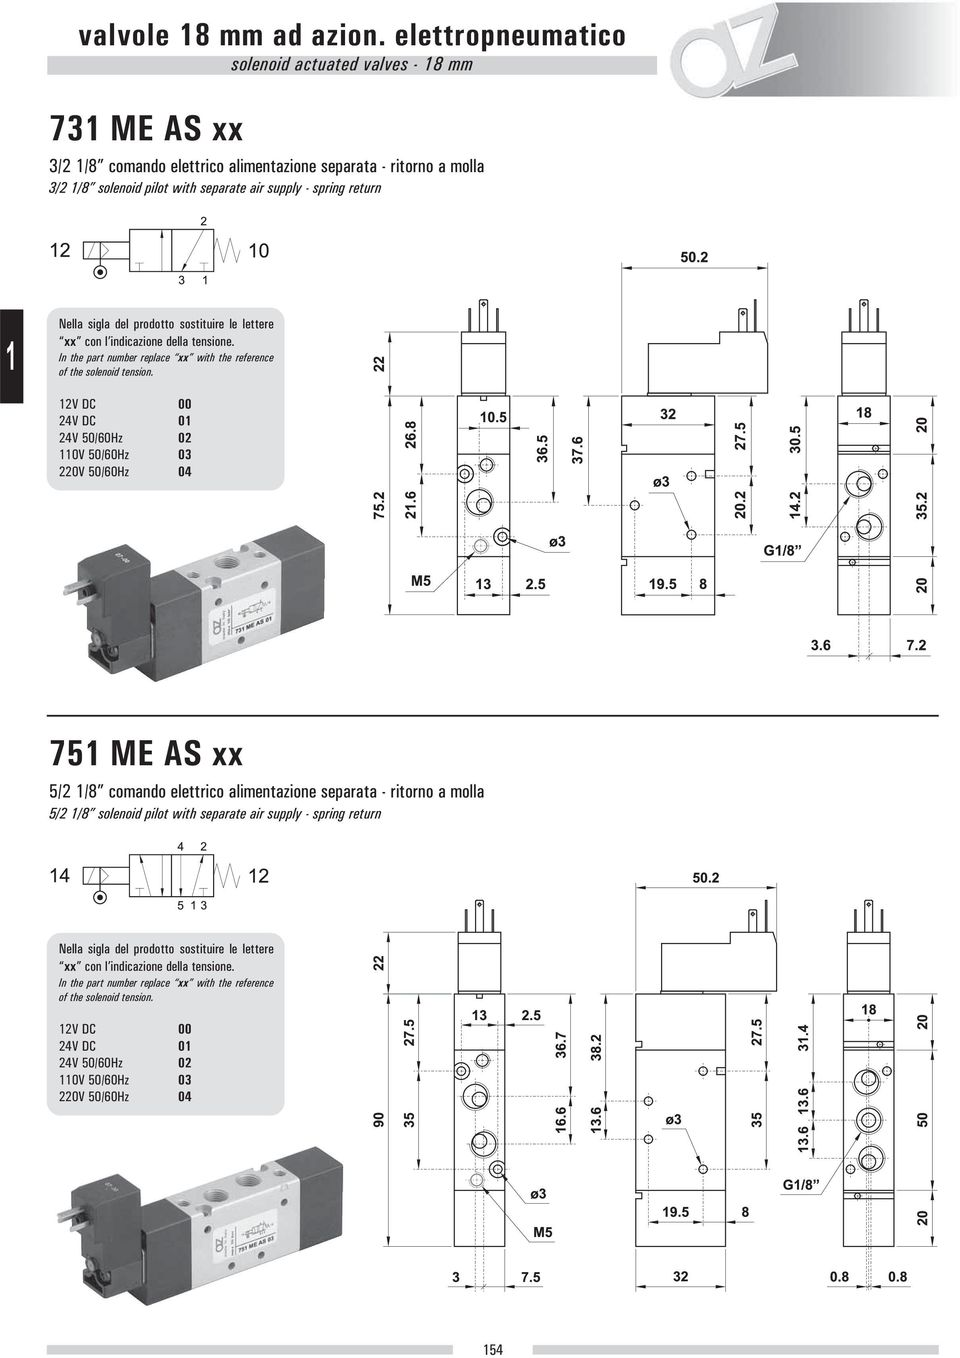 separata - ritorno a molla 3/2 /8 solenoid pilot with separate air supply - spring return 2V DC 00 24V DC